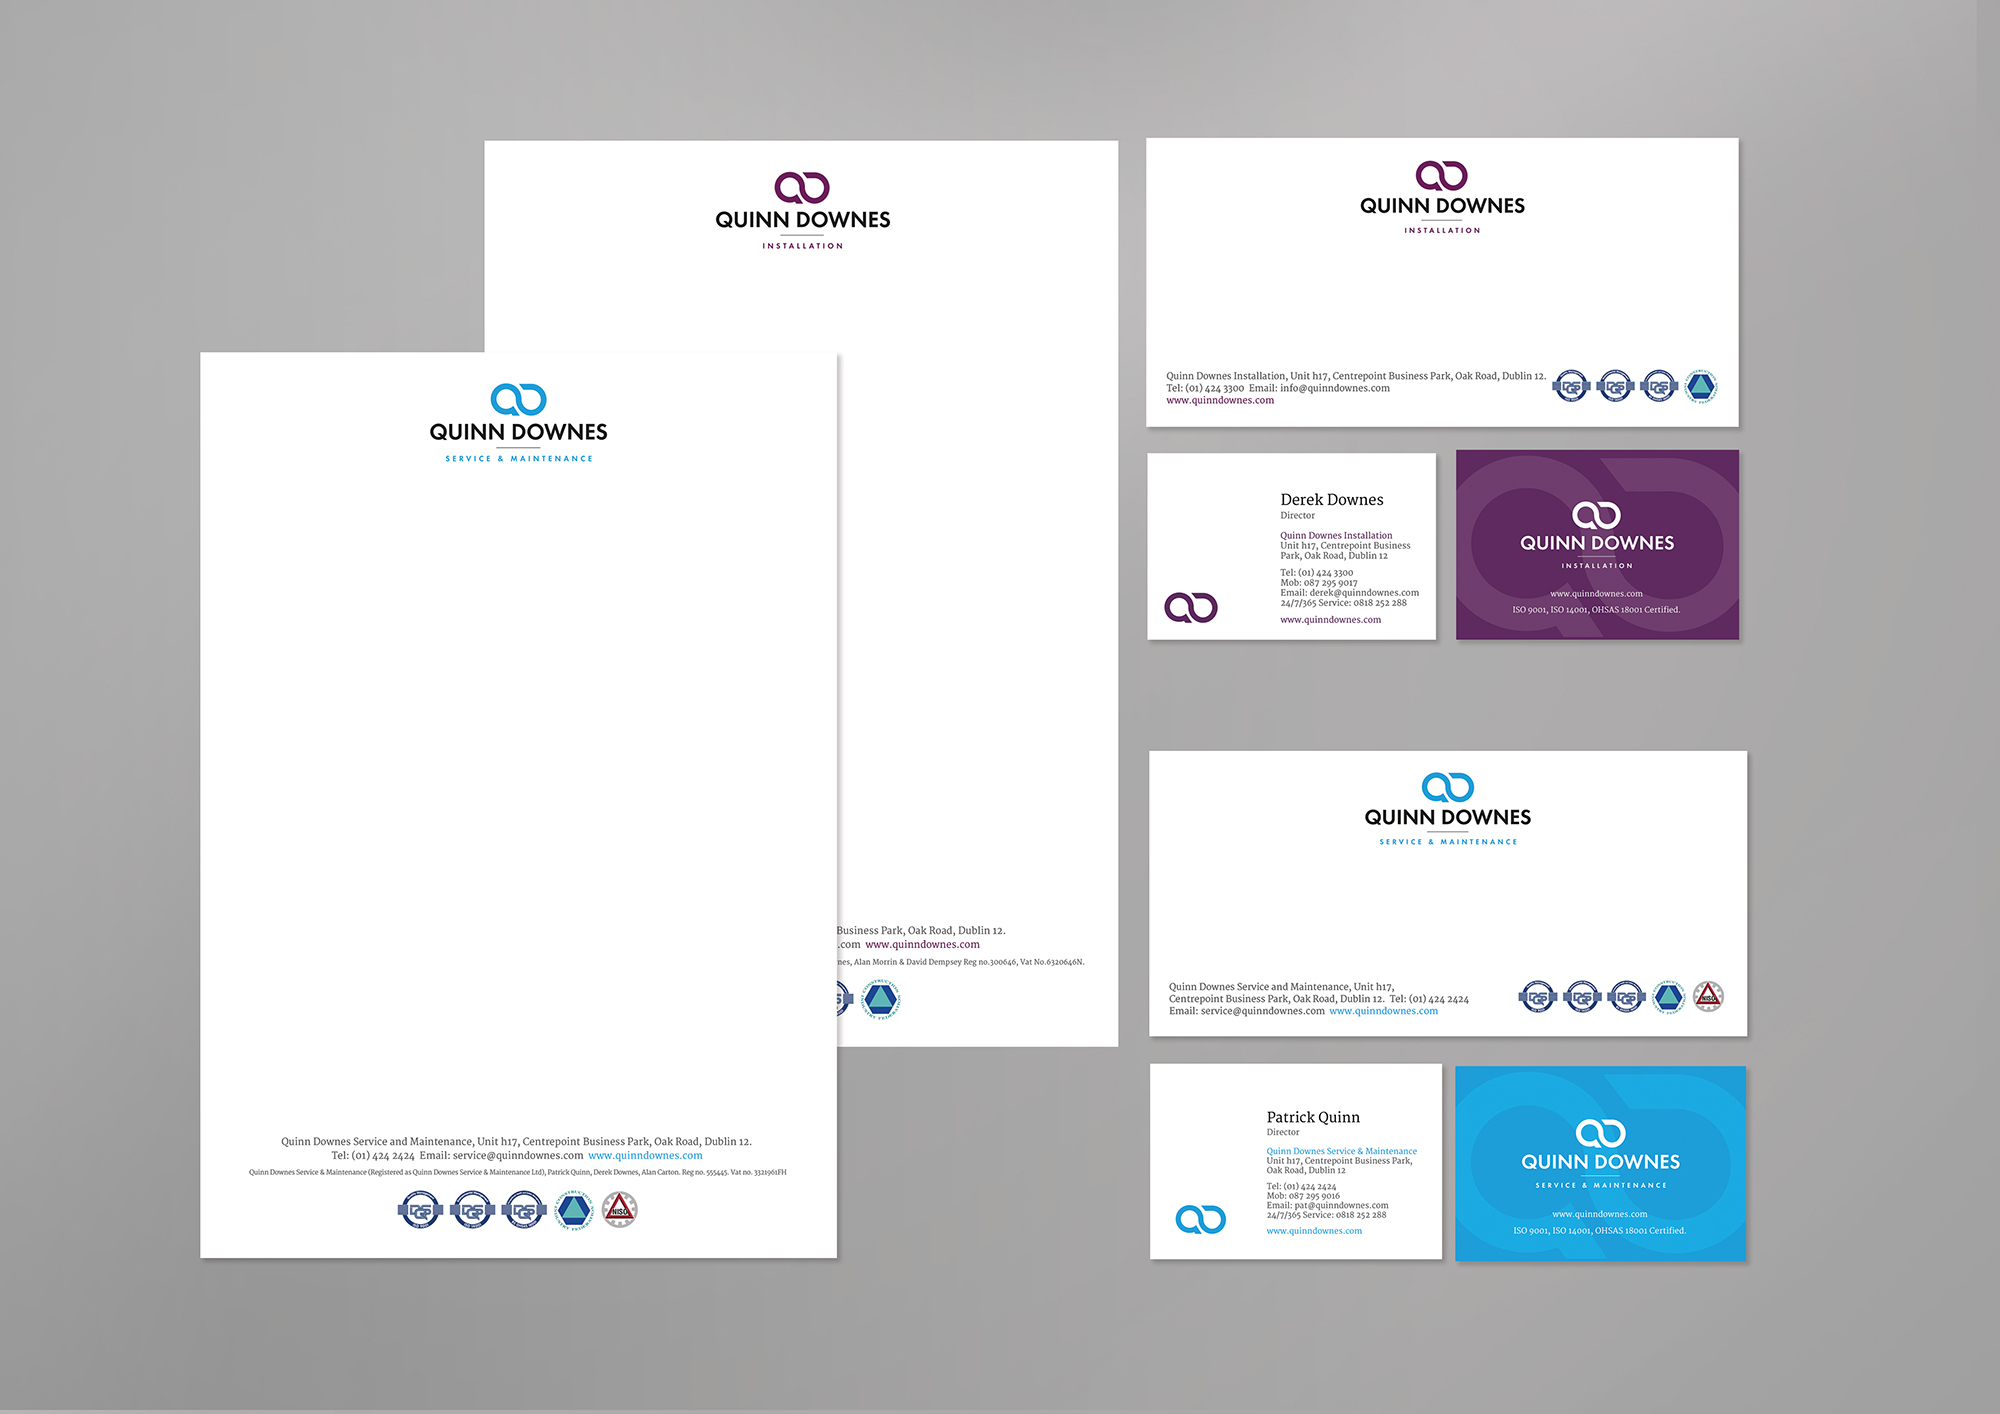 Quinn_Downes_Stationery-MockUp-1-2000.jpg